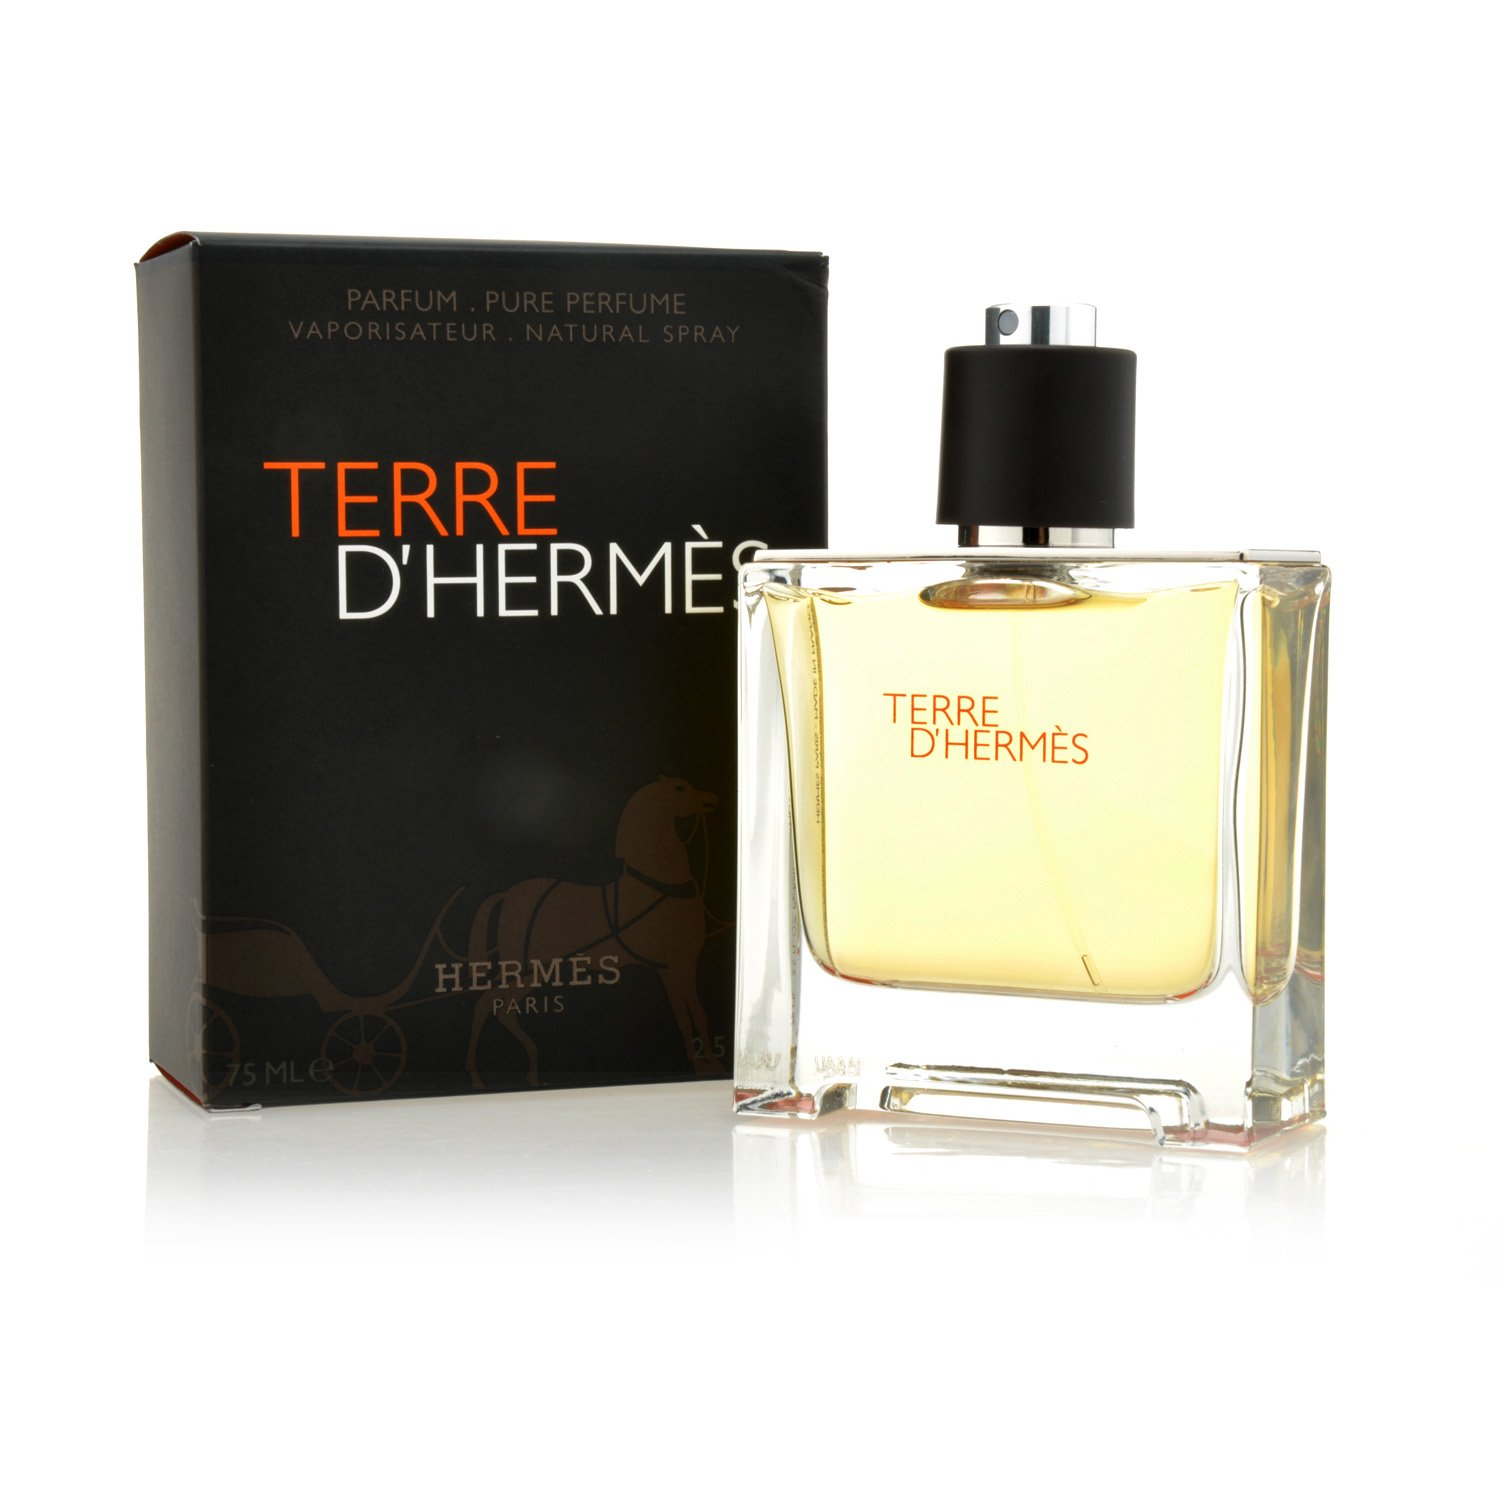 hermes parfum hermes parfum einebinsenweisheit. Black Bedroom Furniture Sets. Home Design Ideas